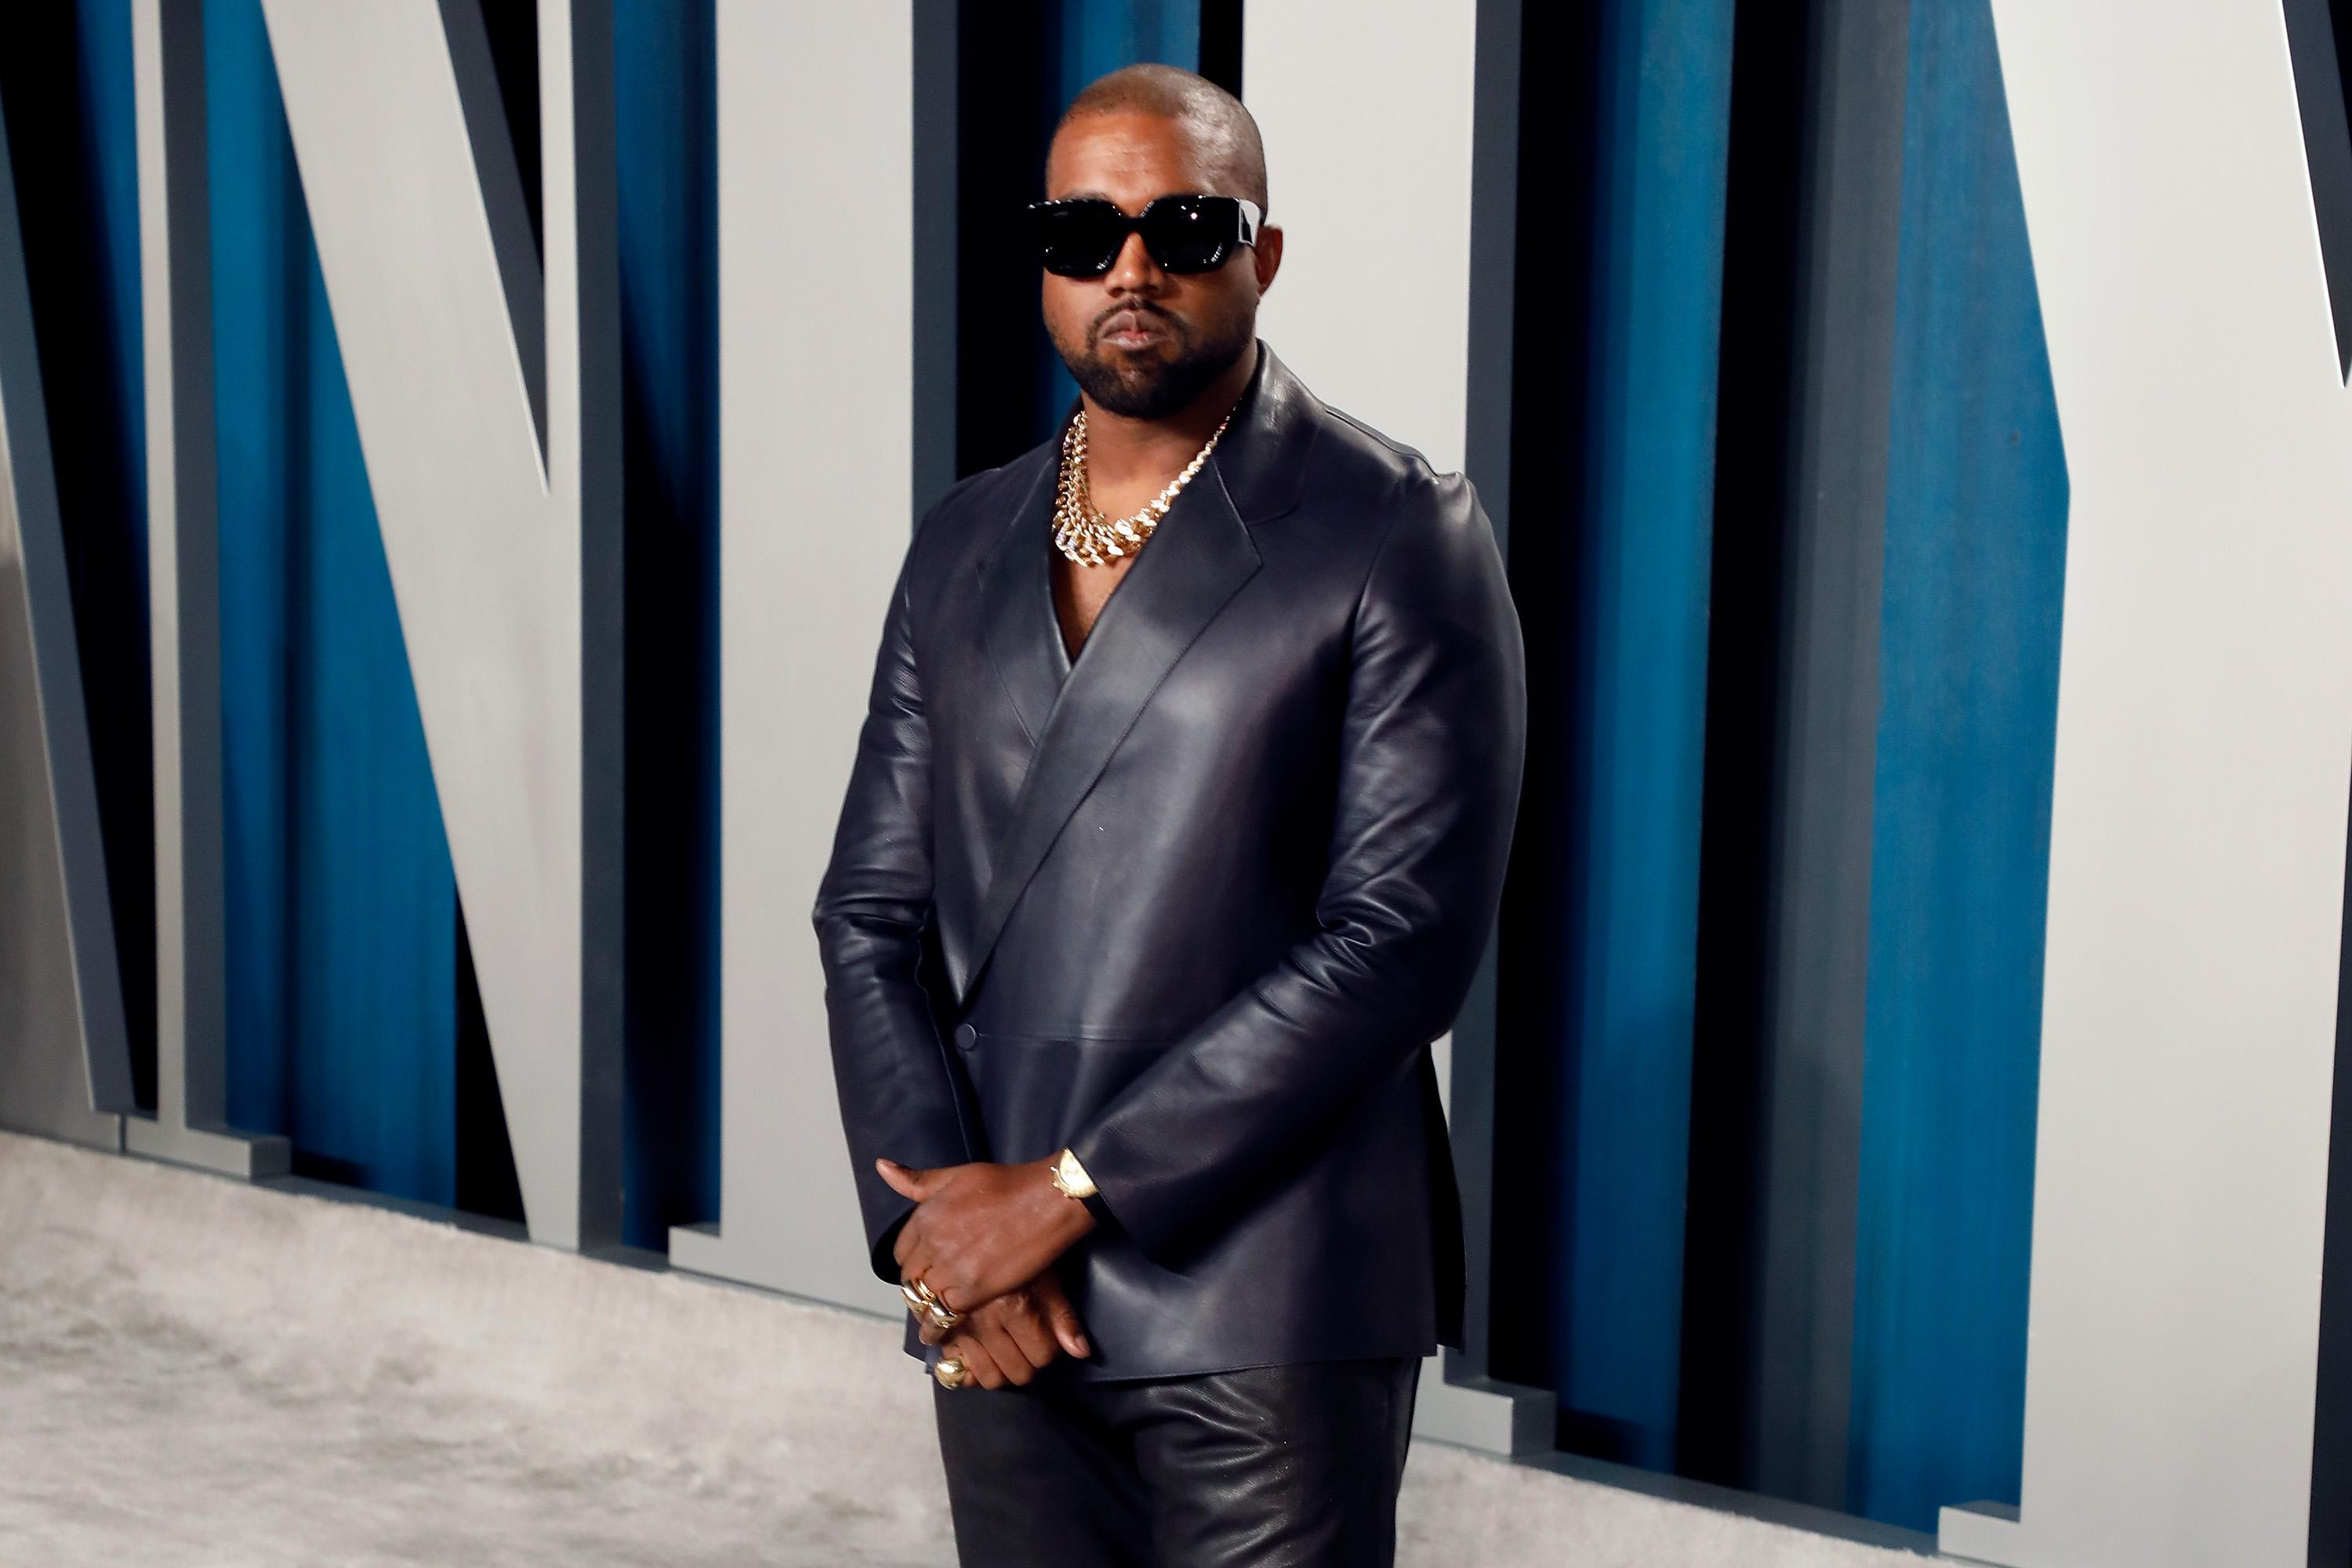 Kanye West affirms he is running for president, reveals he had coronavirus